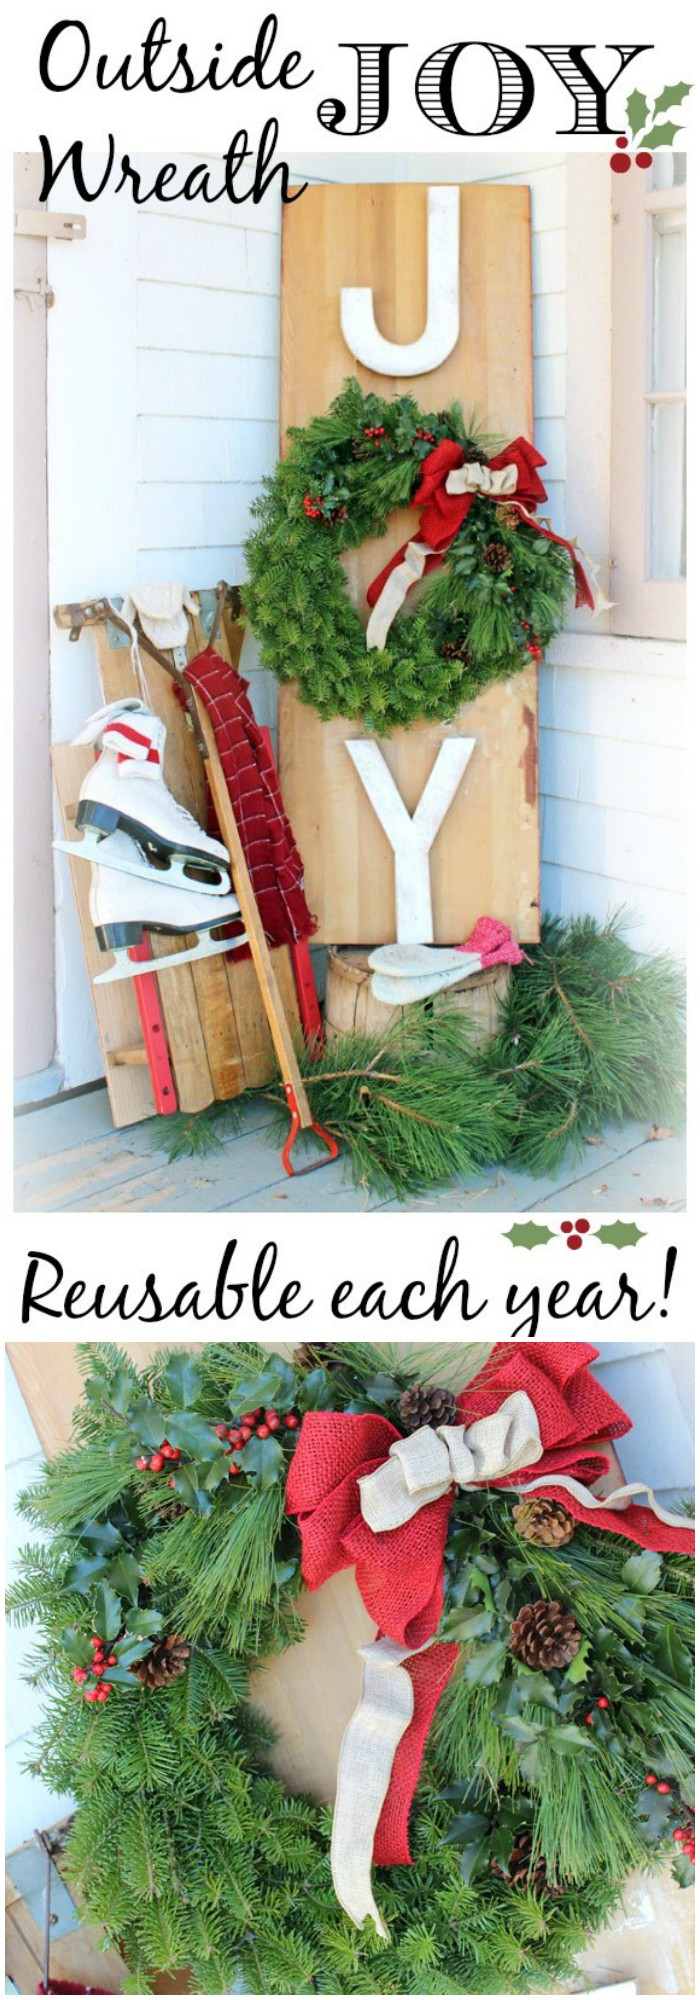 21 Cheap DIY Outdoor Christmas Decorations | DIY Home Decor